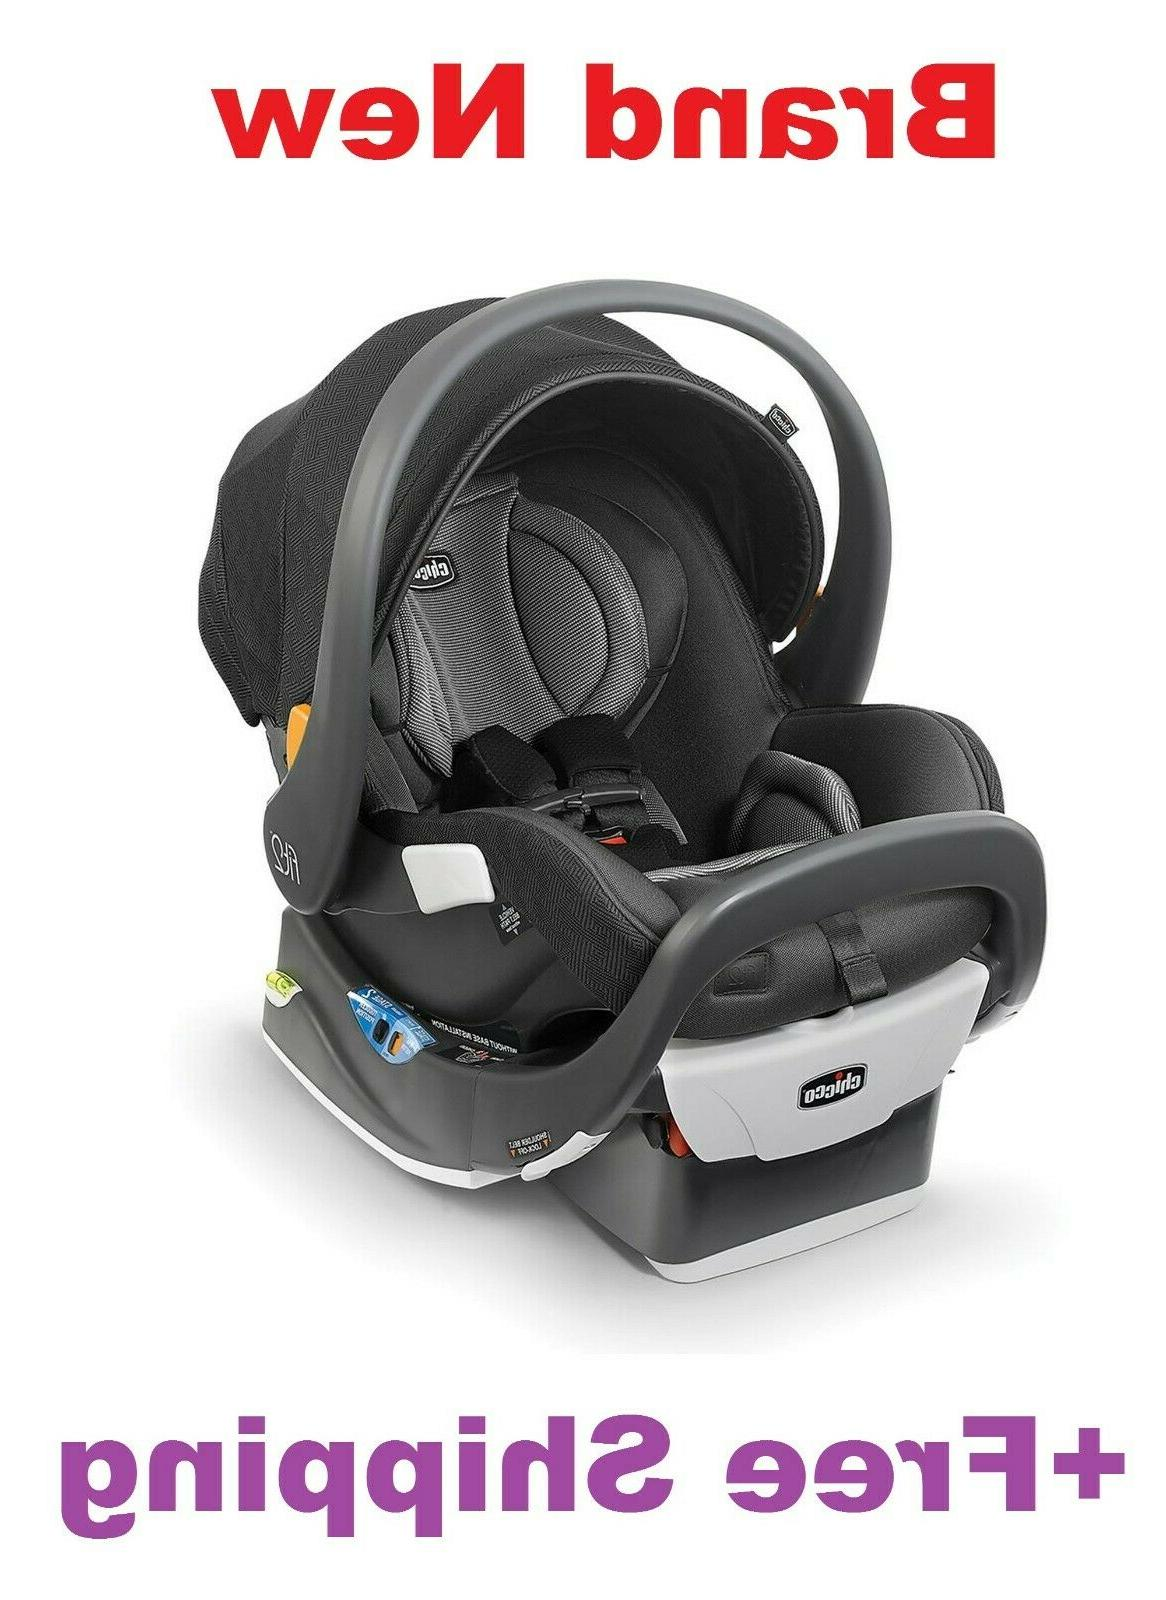 offer fit2 infant and toddler car seat